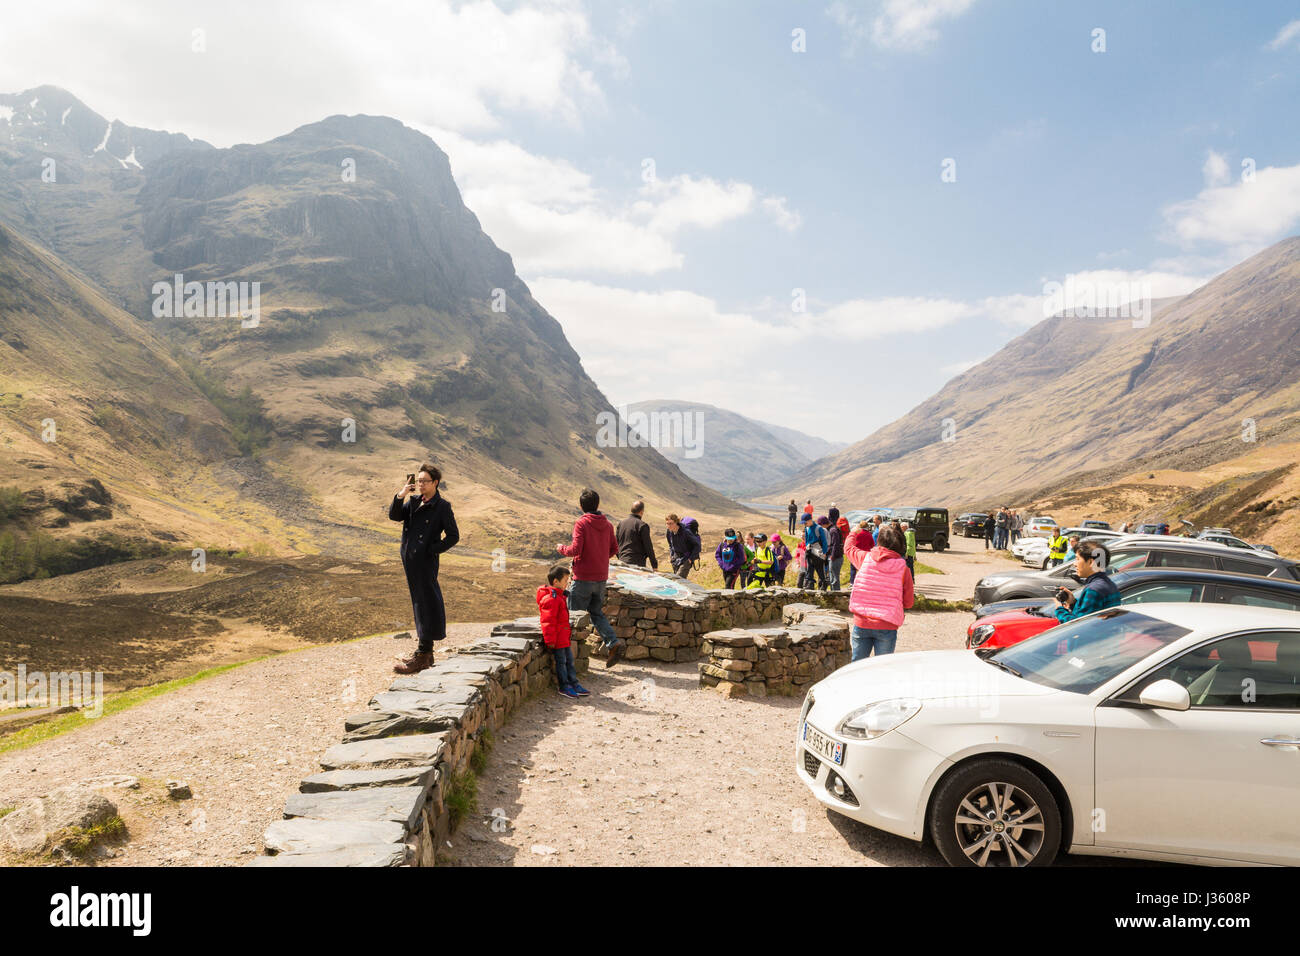 Glencoe, Scotland - tourists at the Three Sisters viewpoint, Scottish HIghlands - Stock Image